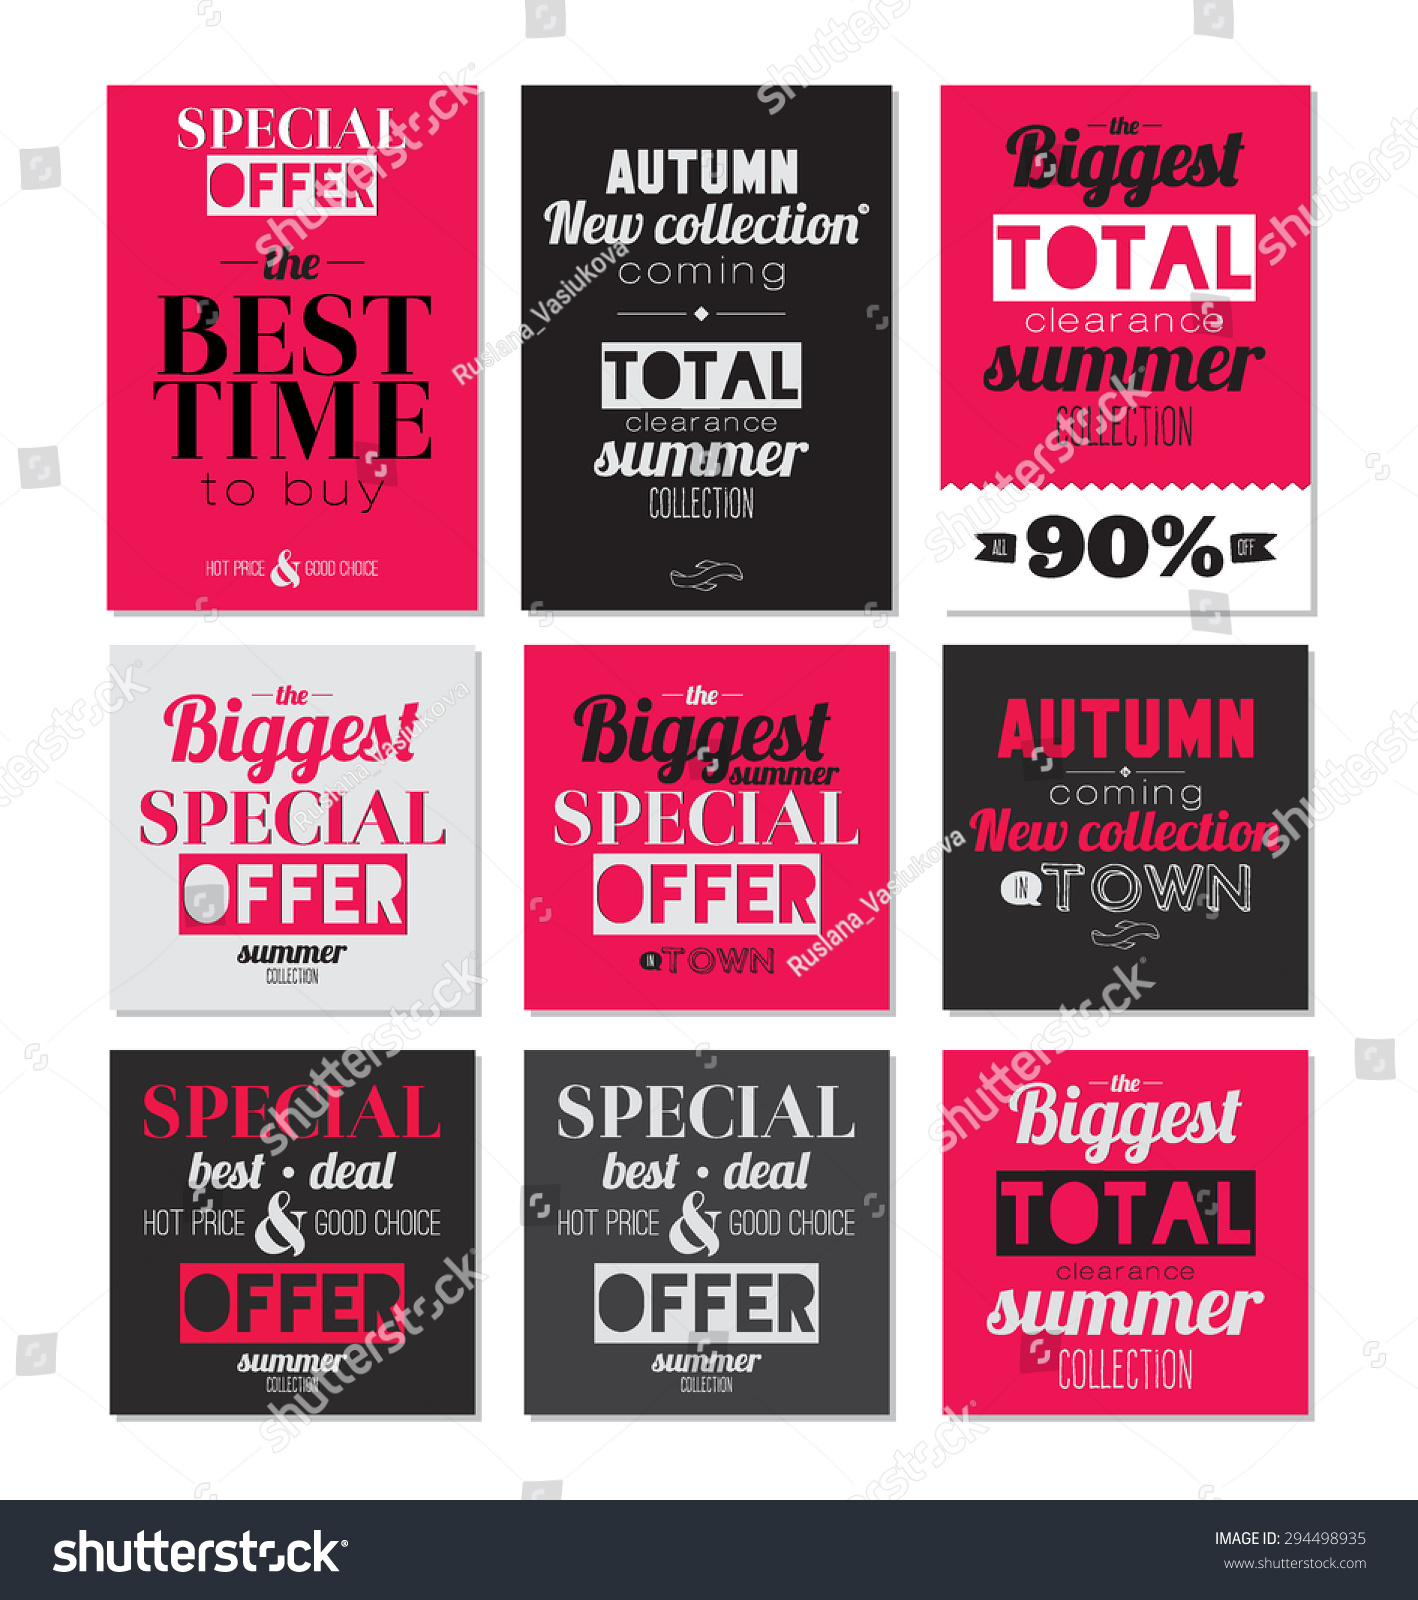 set mega flyer poster banner stock vector  set of mega flyer poster or banner design best discount offers stylish